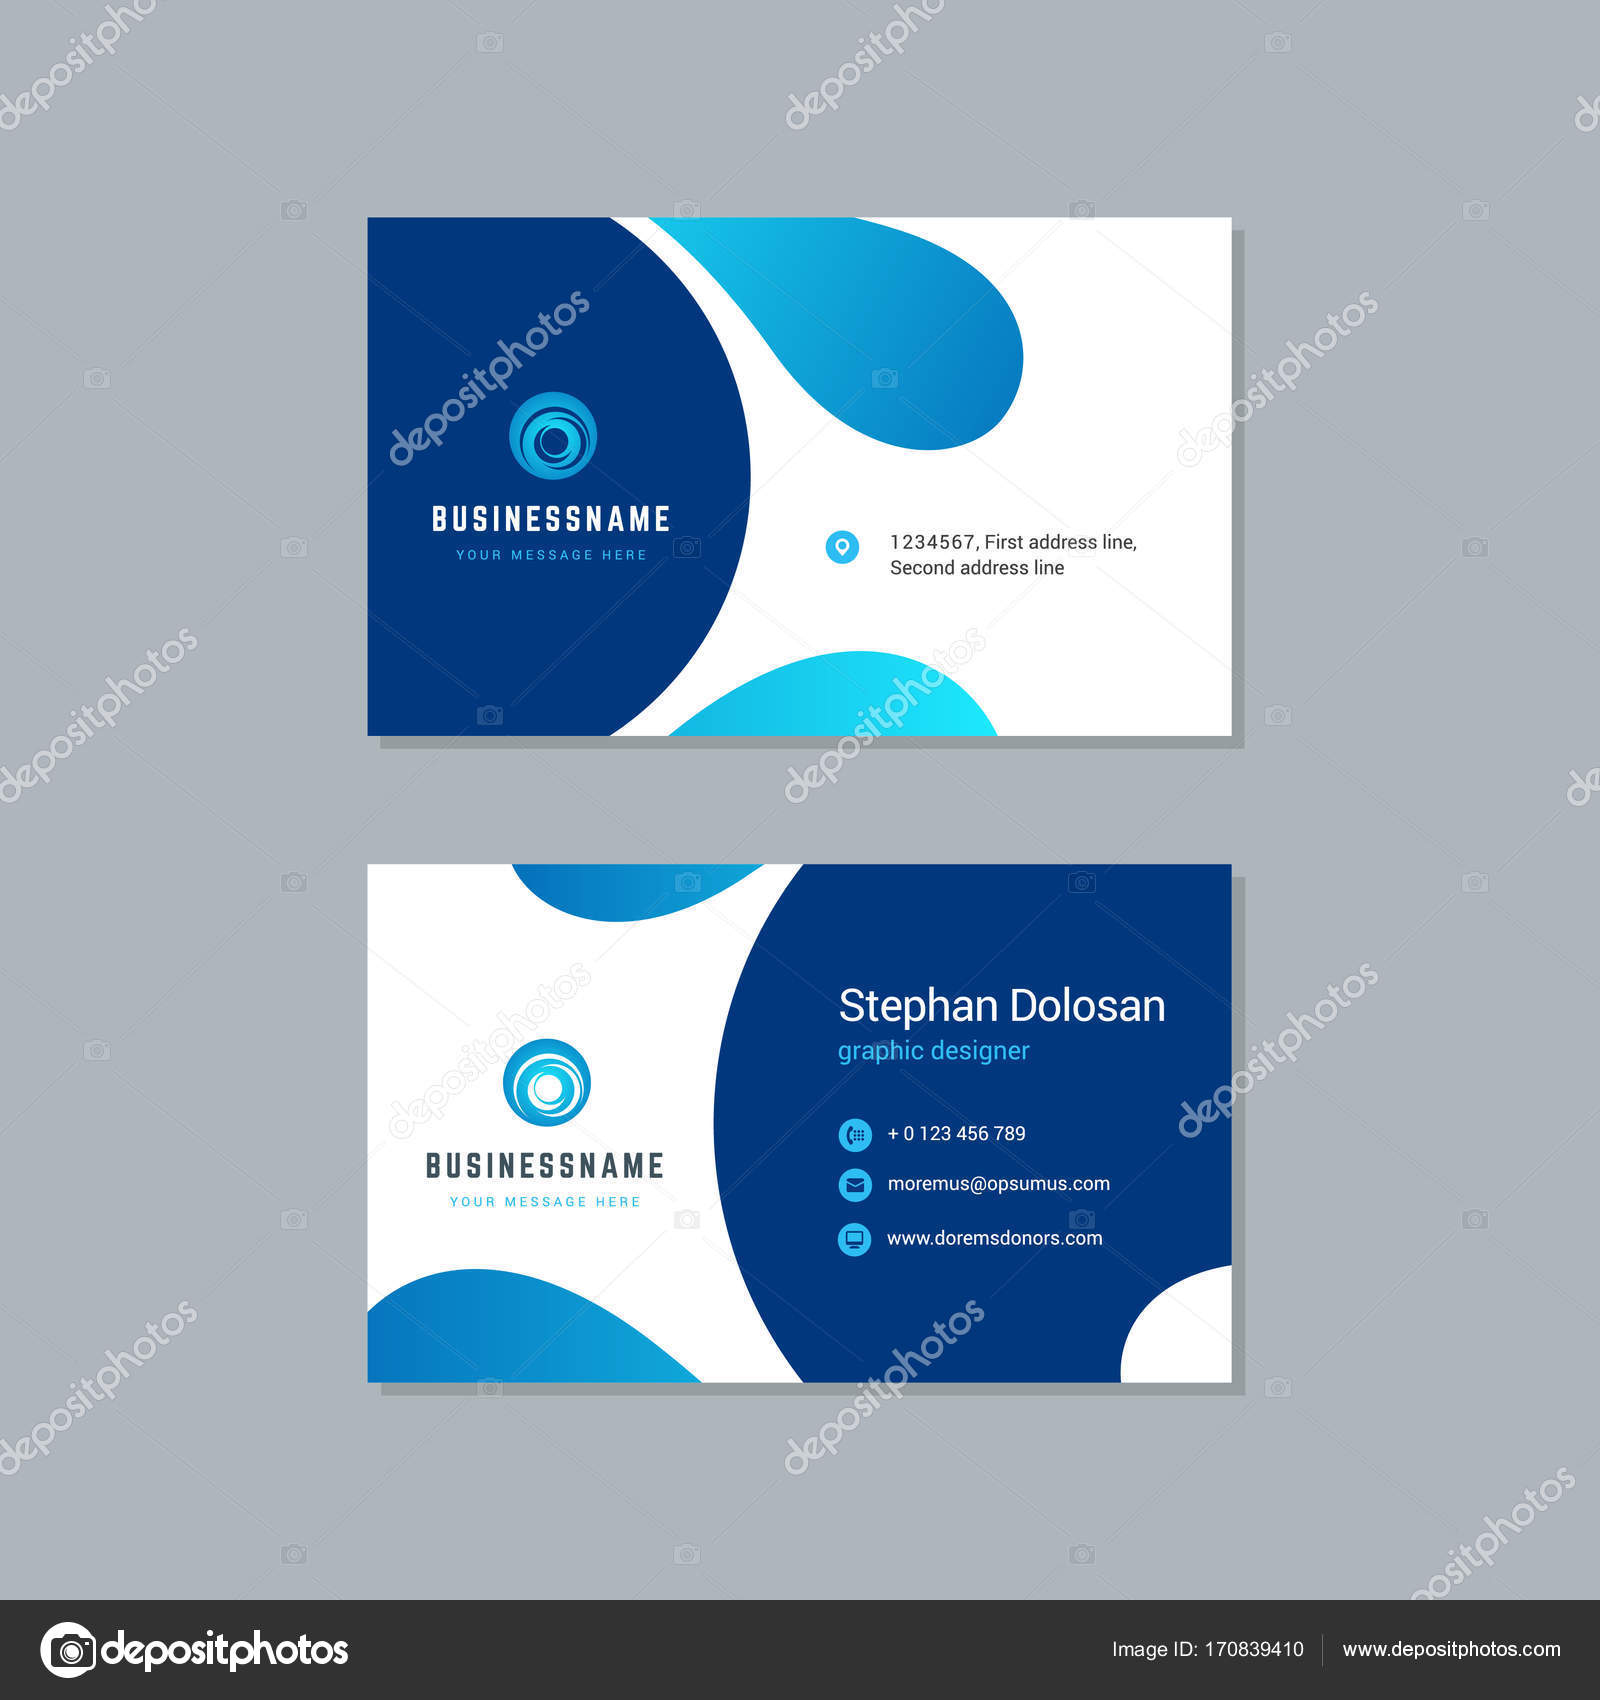 Business card design trendy blue colors template stock vector business card design trendy blue colors template modern corporate branding style vector illustration two sides with abstract logo on clean background colourmoves